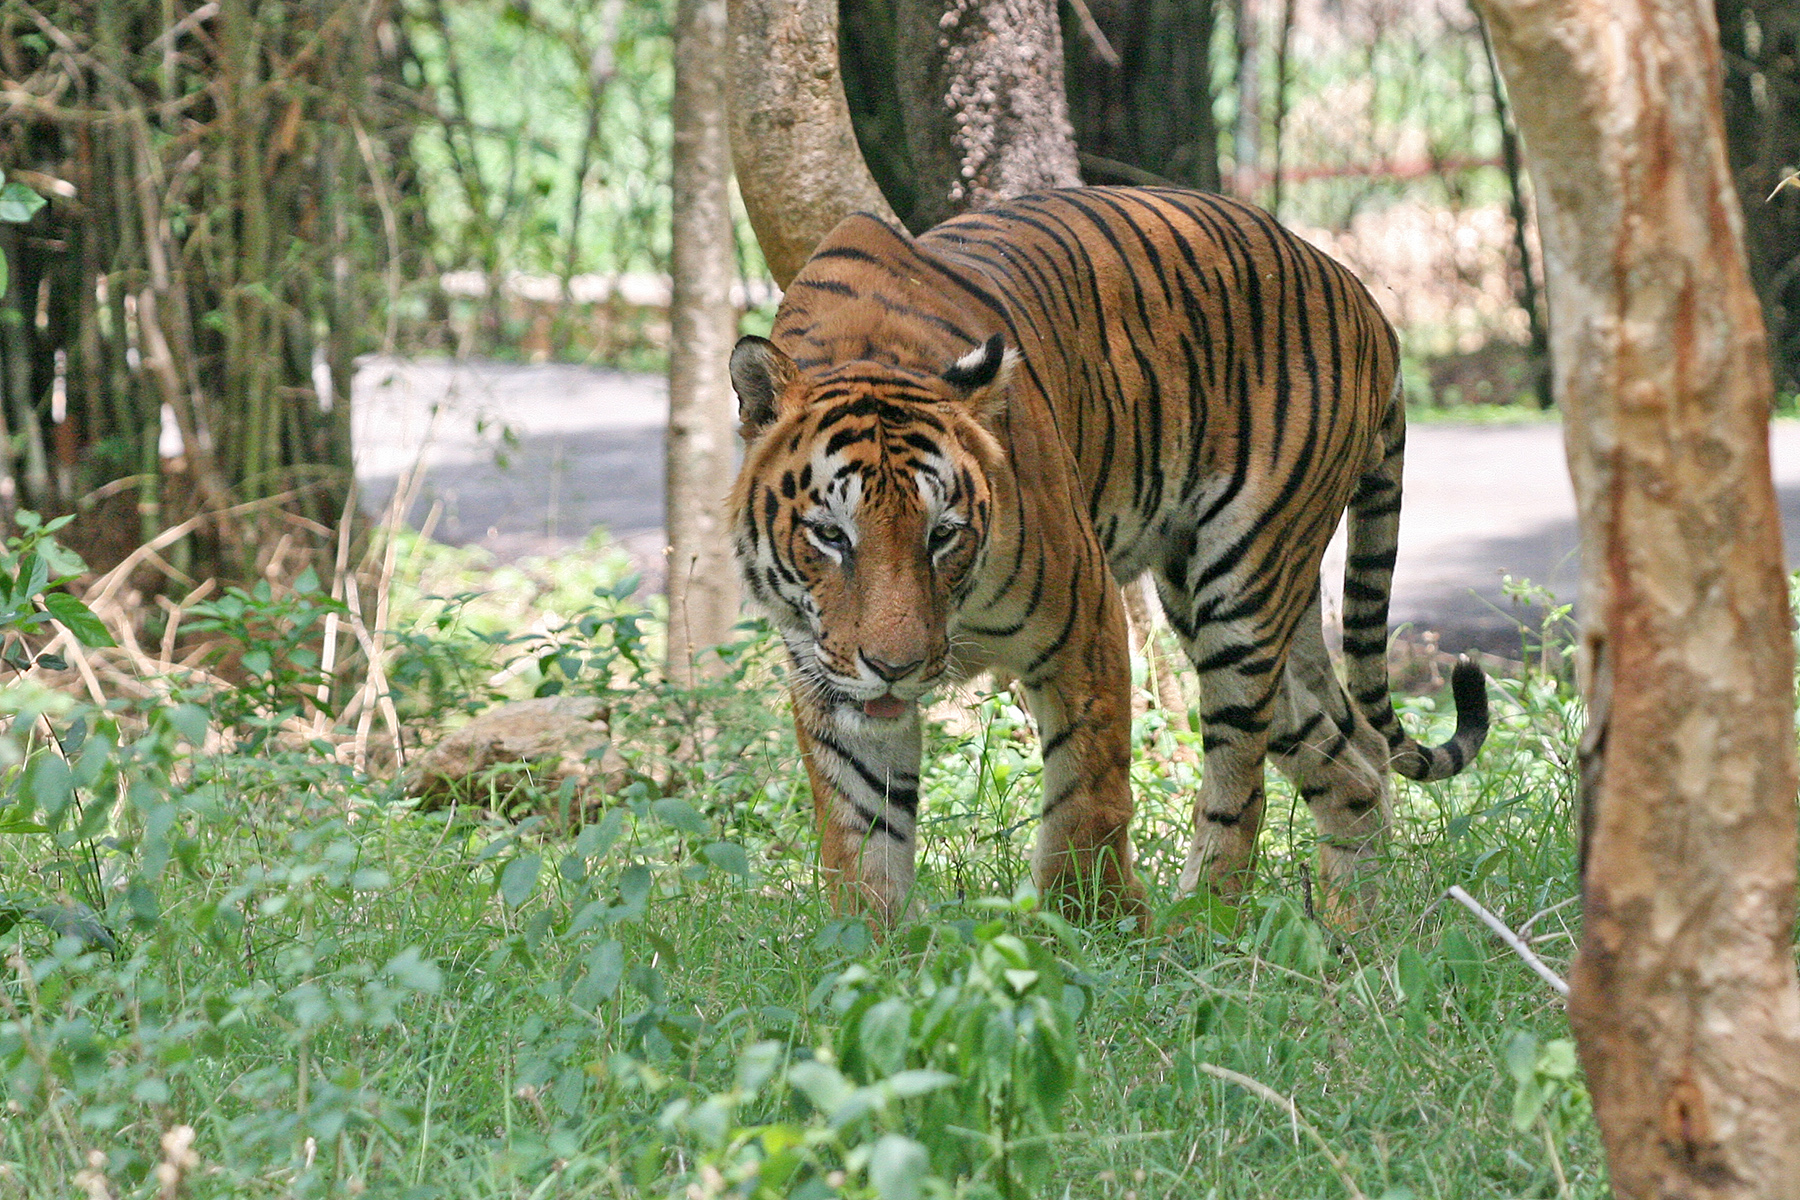 A Royal Bengal Tiger, the largest big cat in Bannerghatta National Park, India